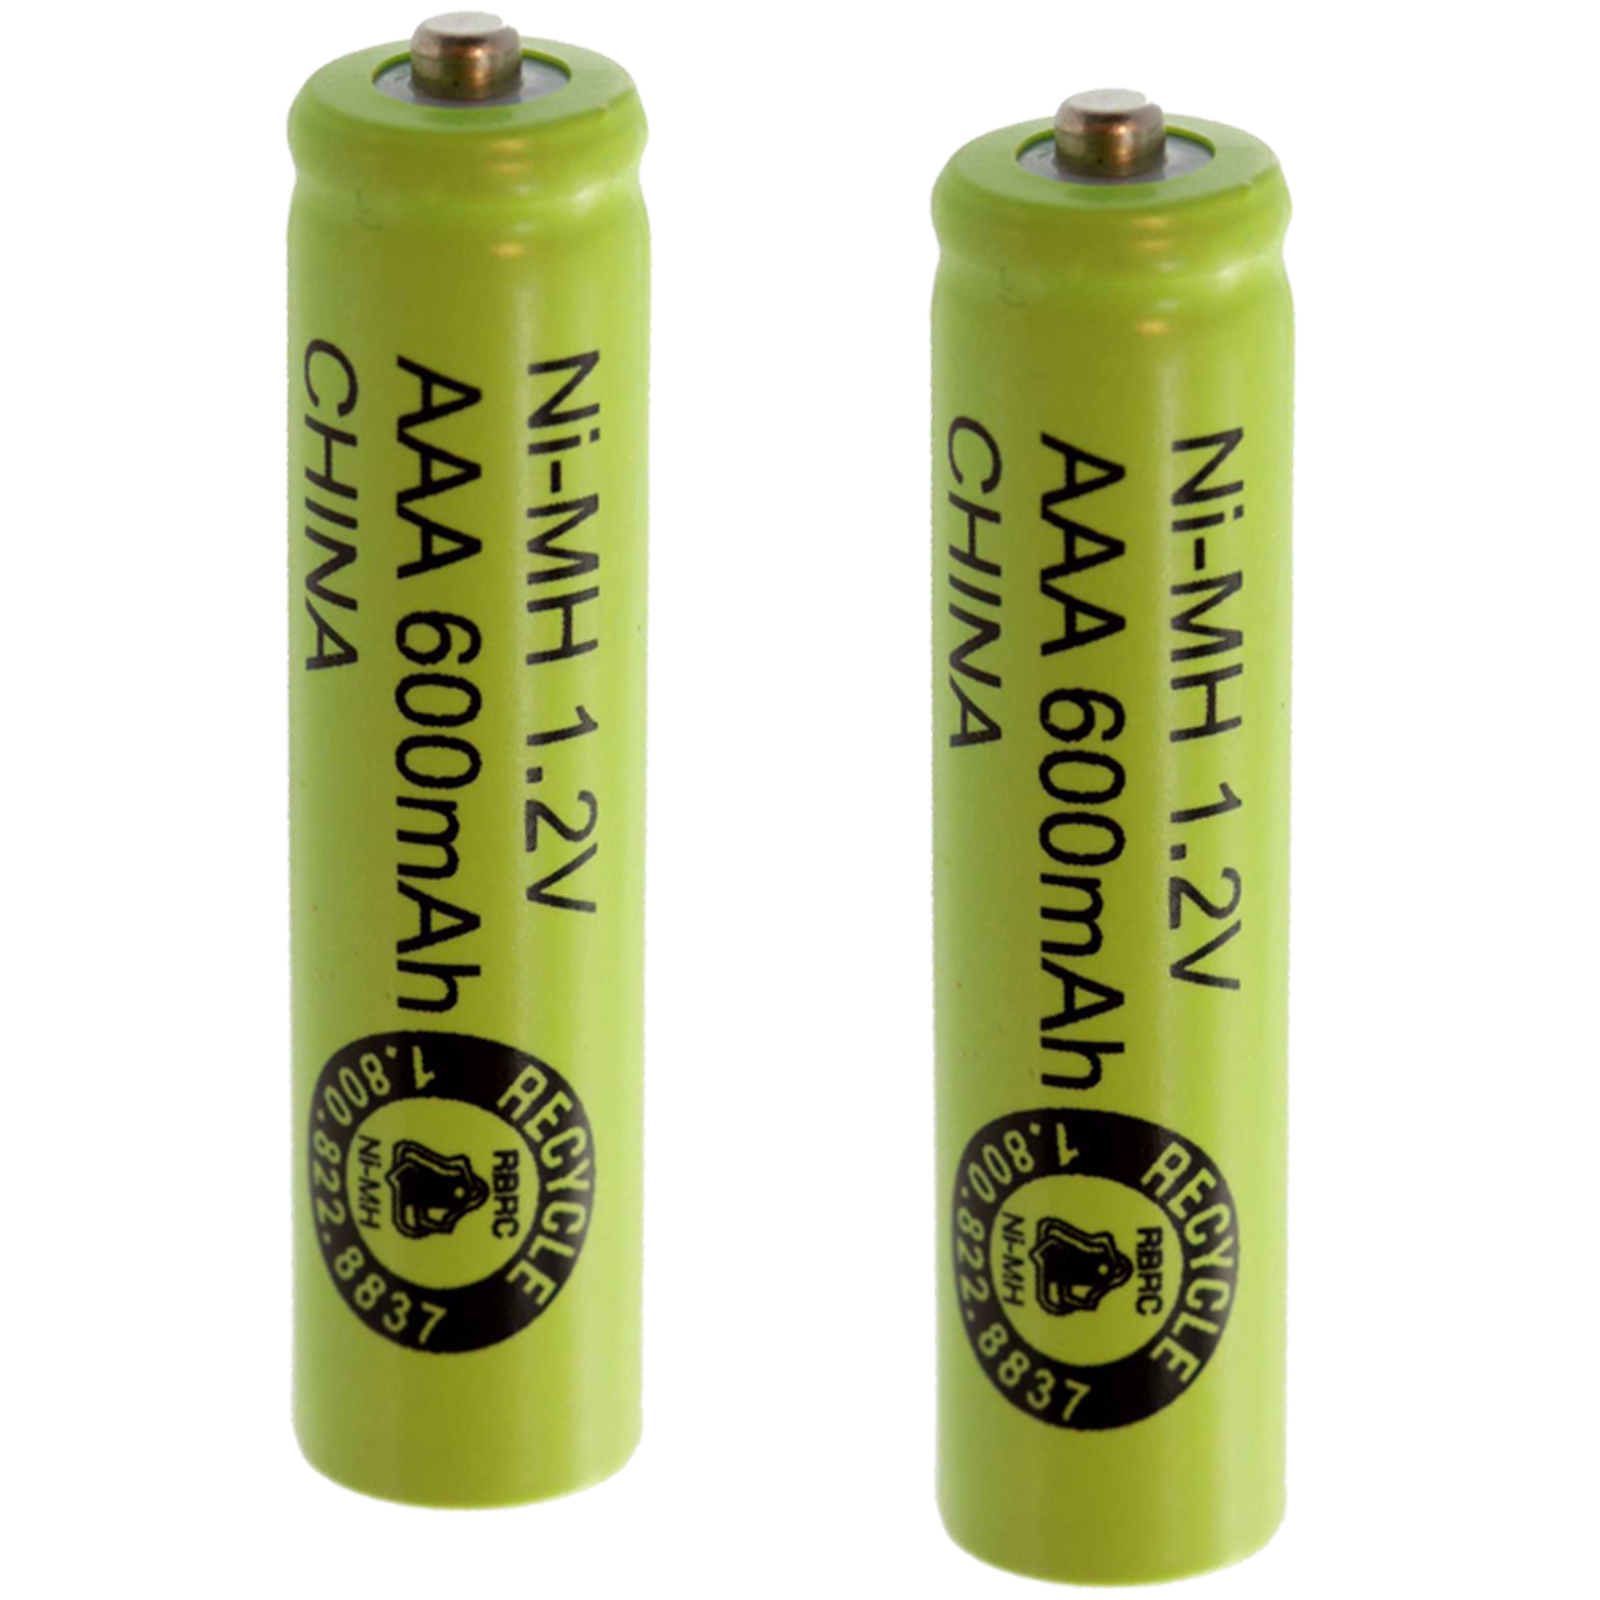 2pc exell aaa sz rechargeable battery 600mah nimh 1 2v button top cell usa ship ebay. Black Bedroom Furniture Sets. Home Design Ideas